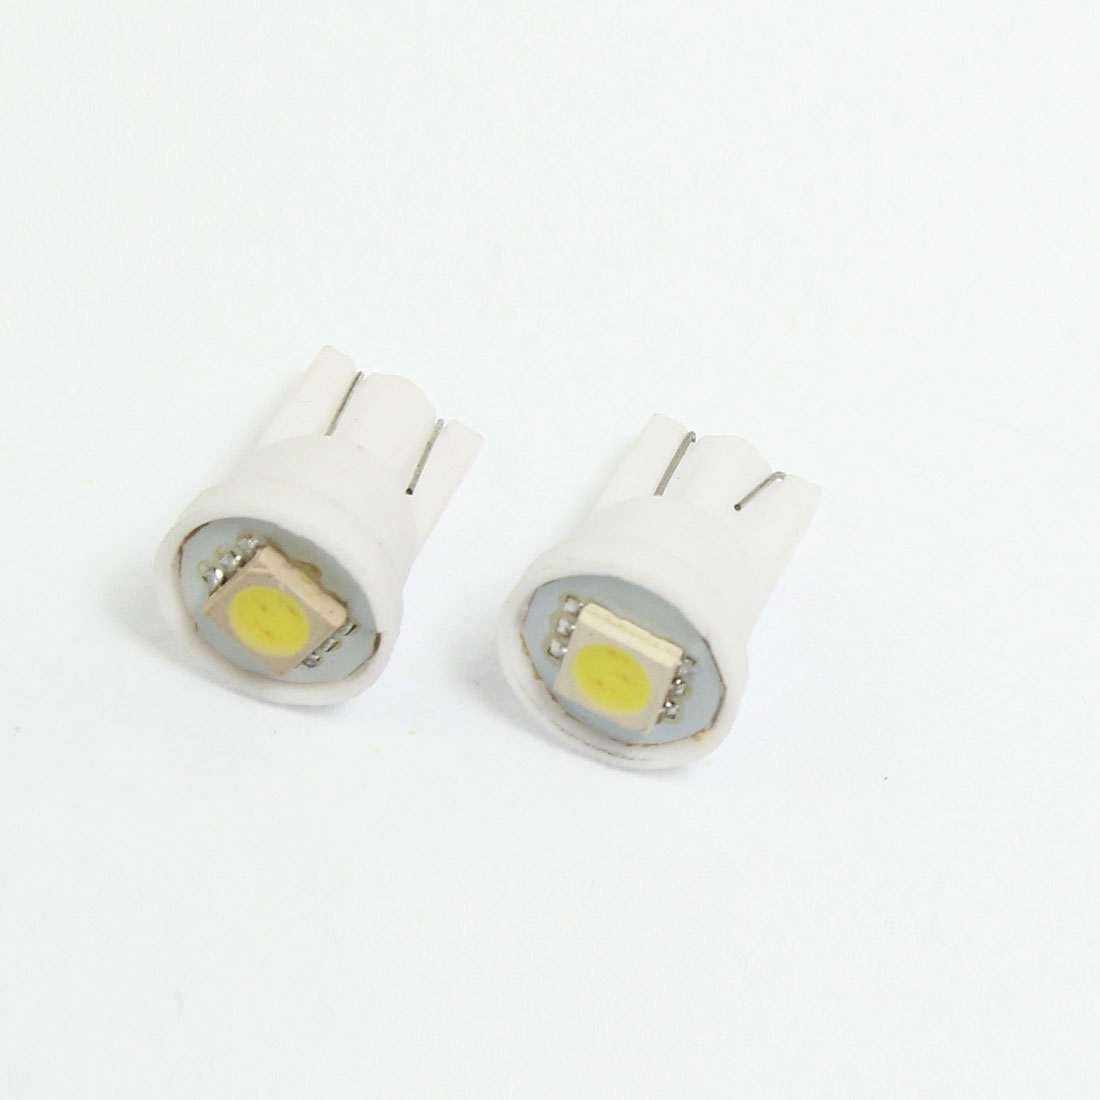 2 x T10 927 White LED 5050 SMD Bulb Trunk Instrument Board Lamp for Car